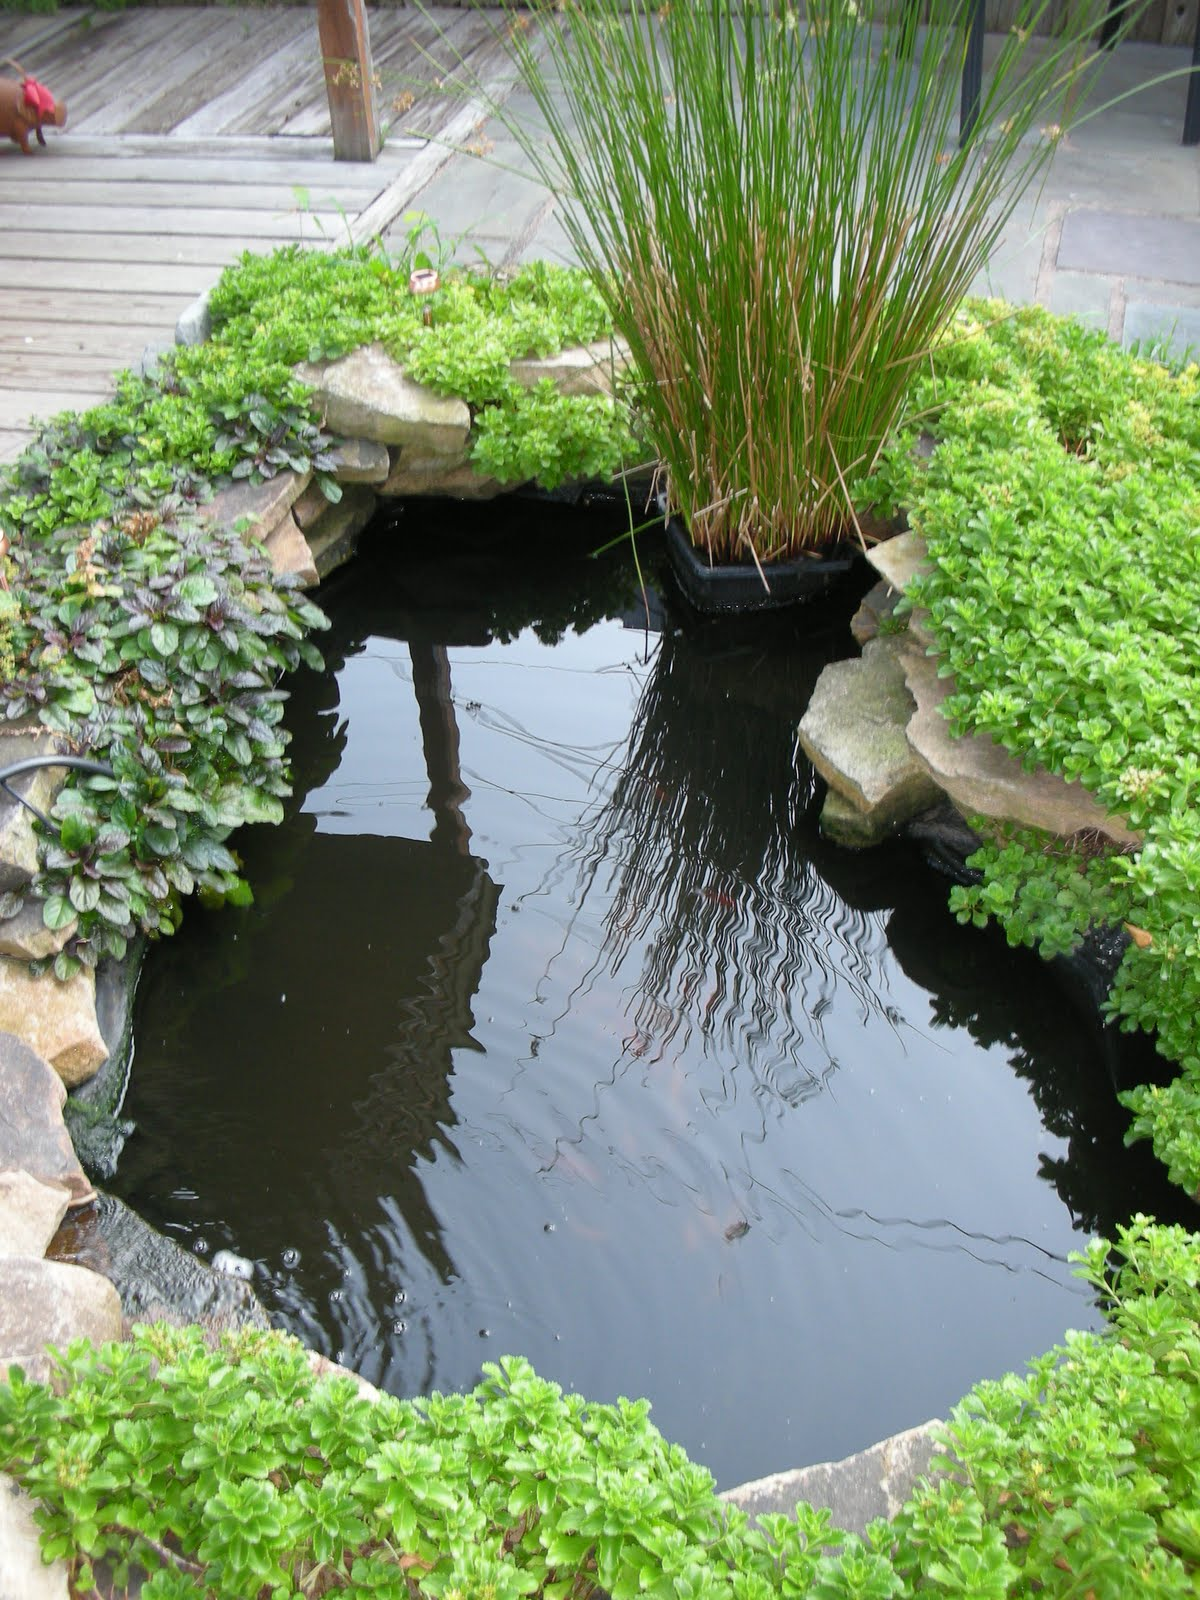 Swoon style and home slice of life the koi fish pond for Koi pond design layout